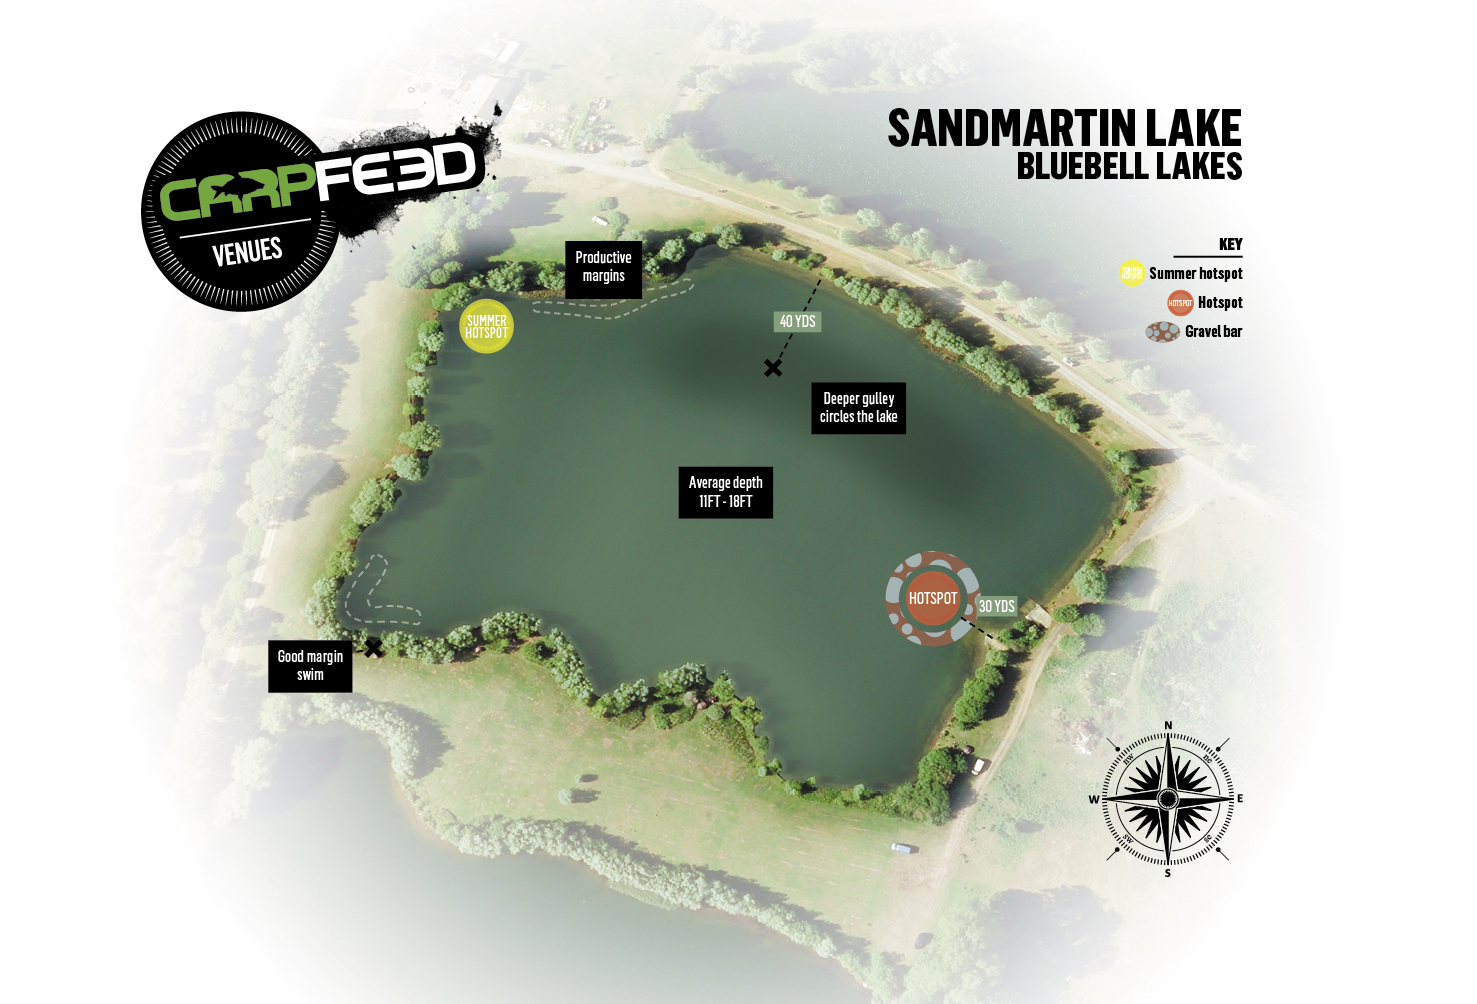 Click for our guide to Sandmartin